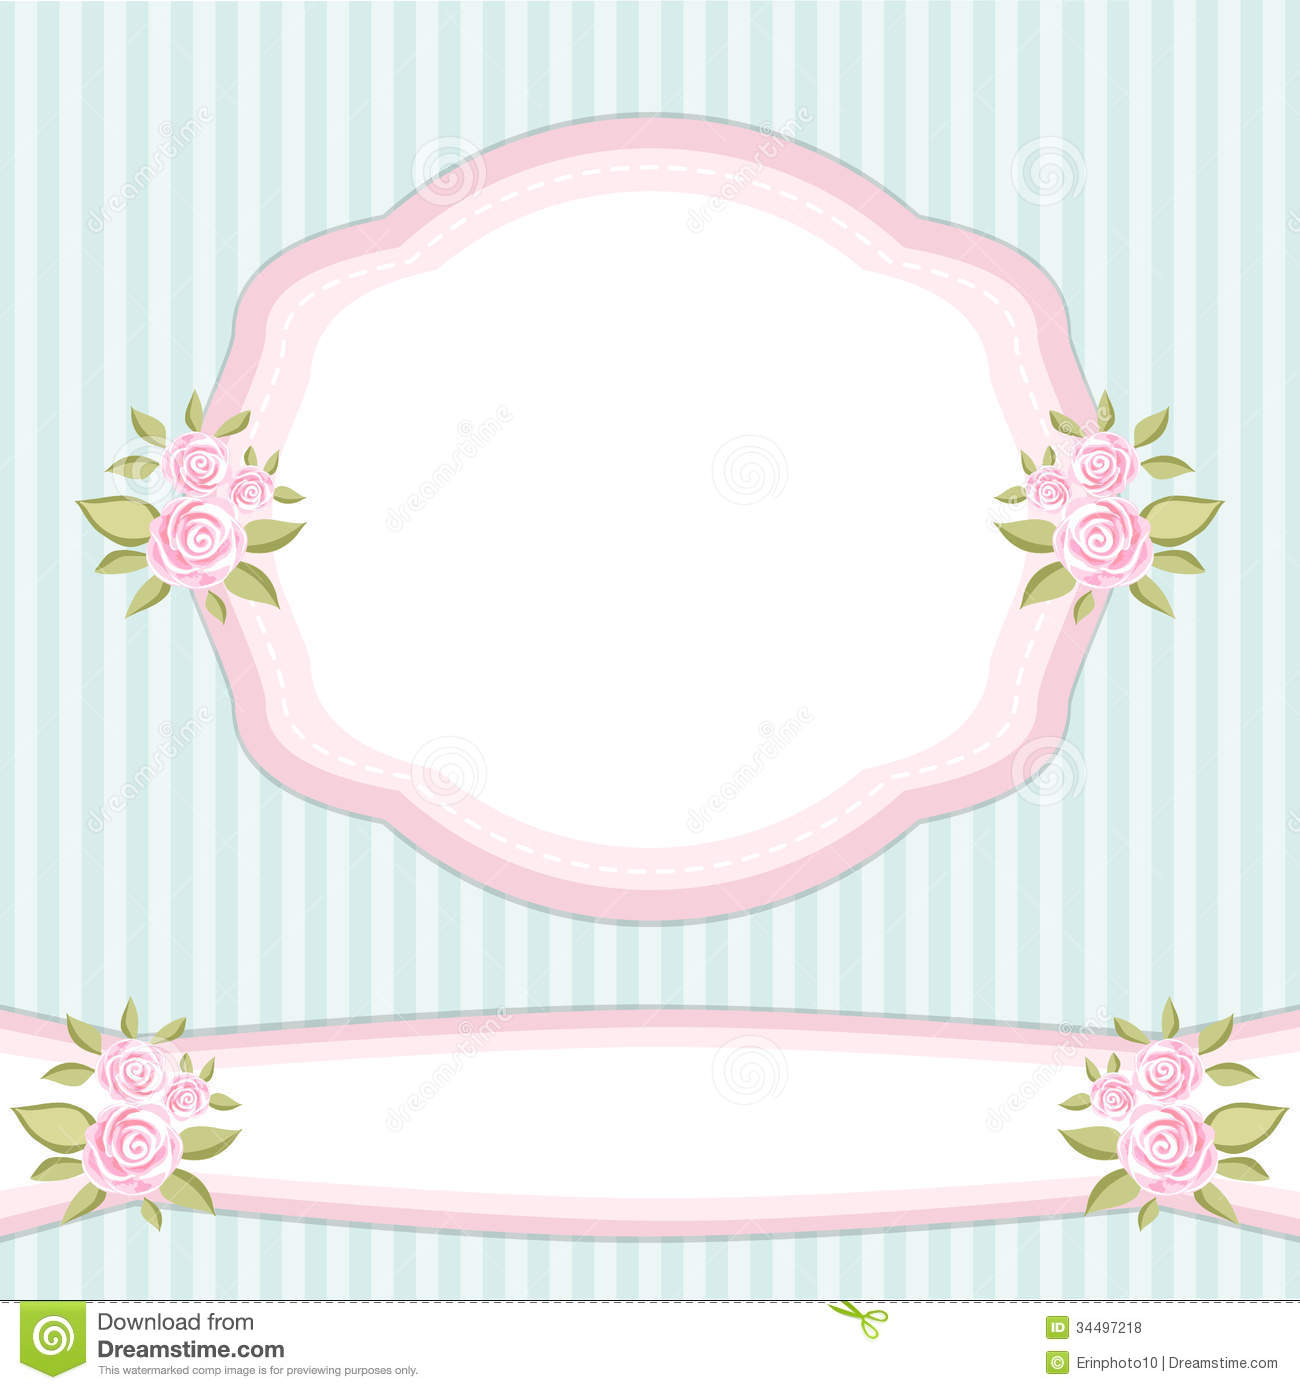 Vintage Frame 2 Stock Vector Illustration Of Blossom 34497218